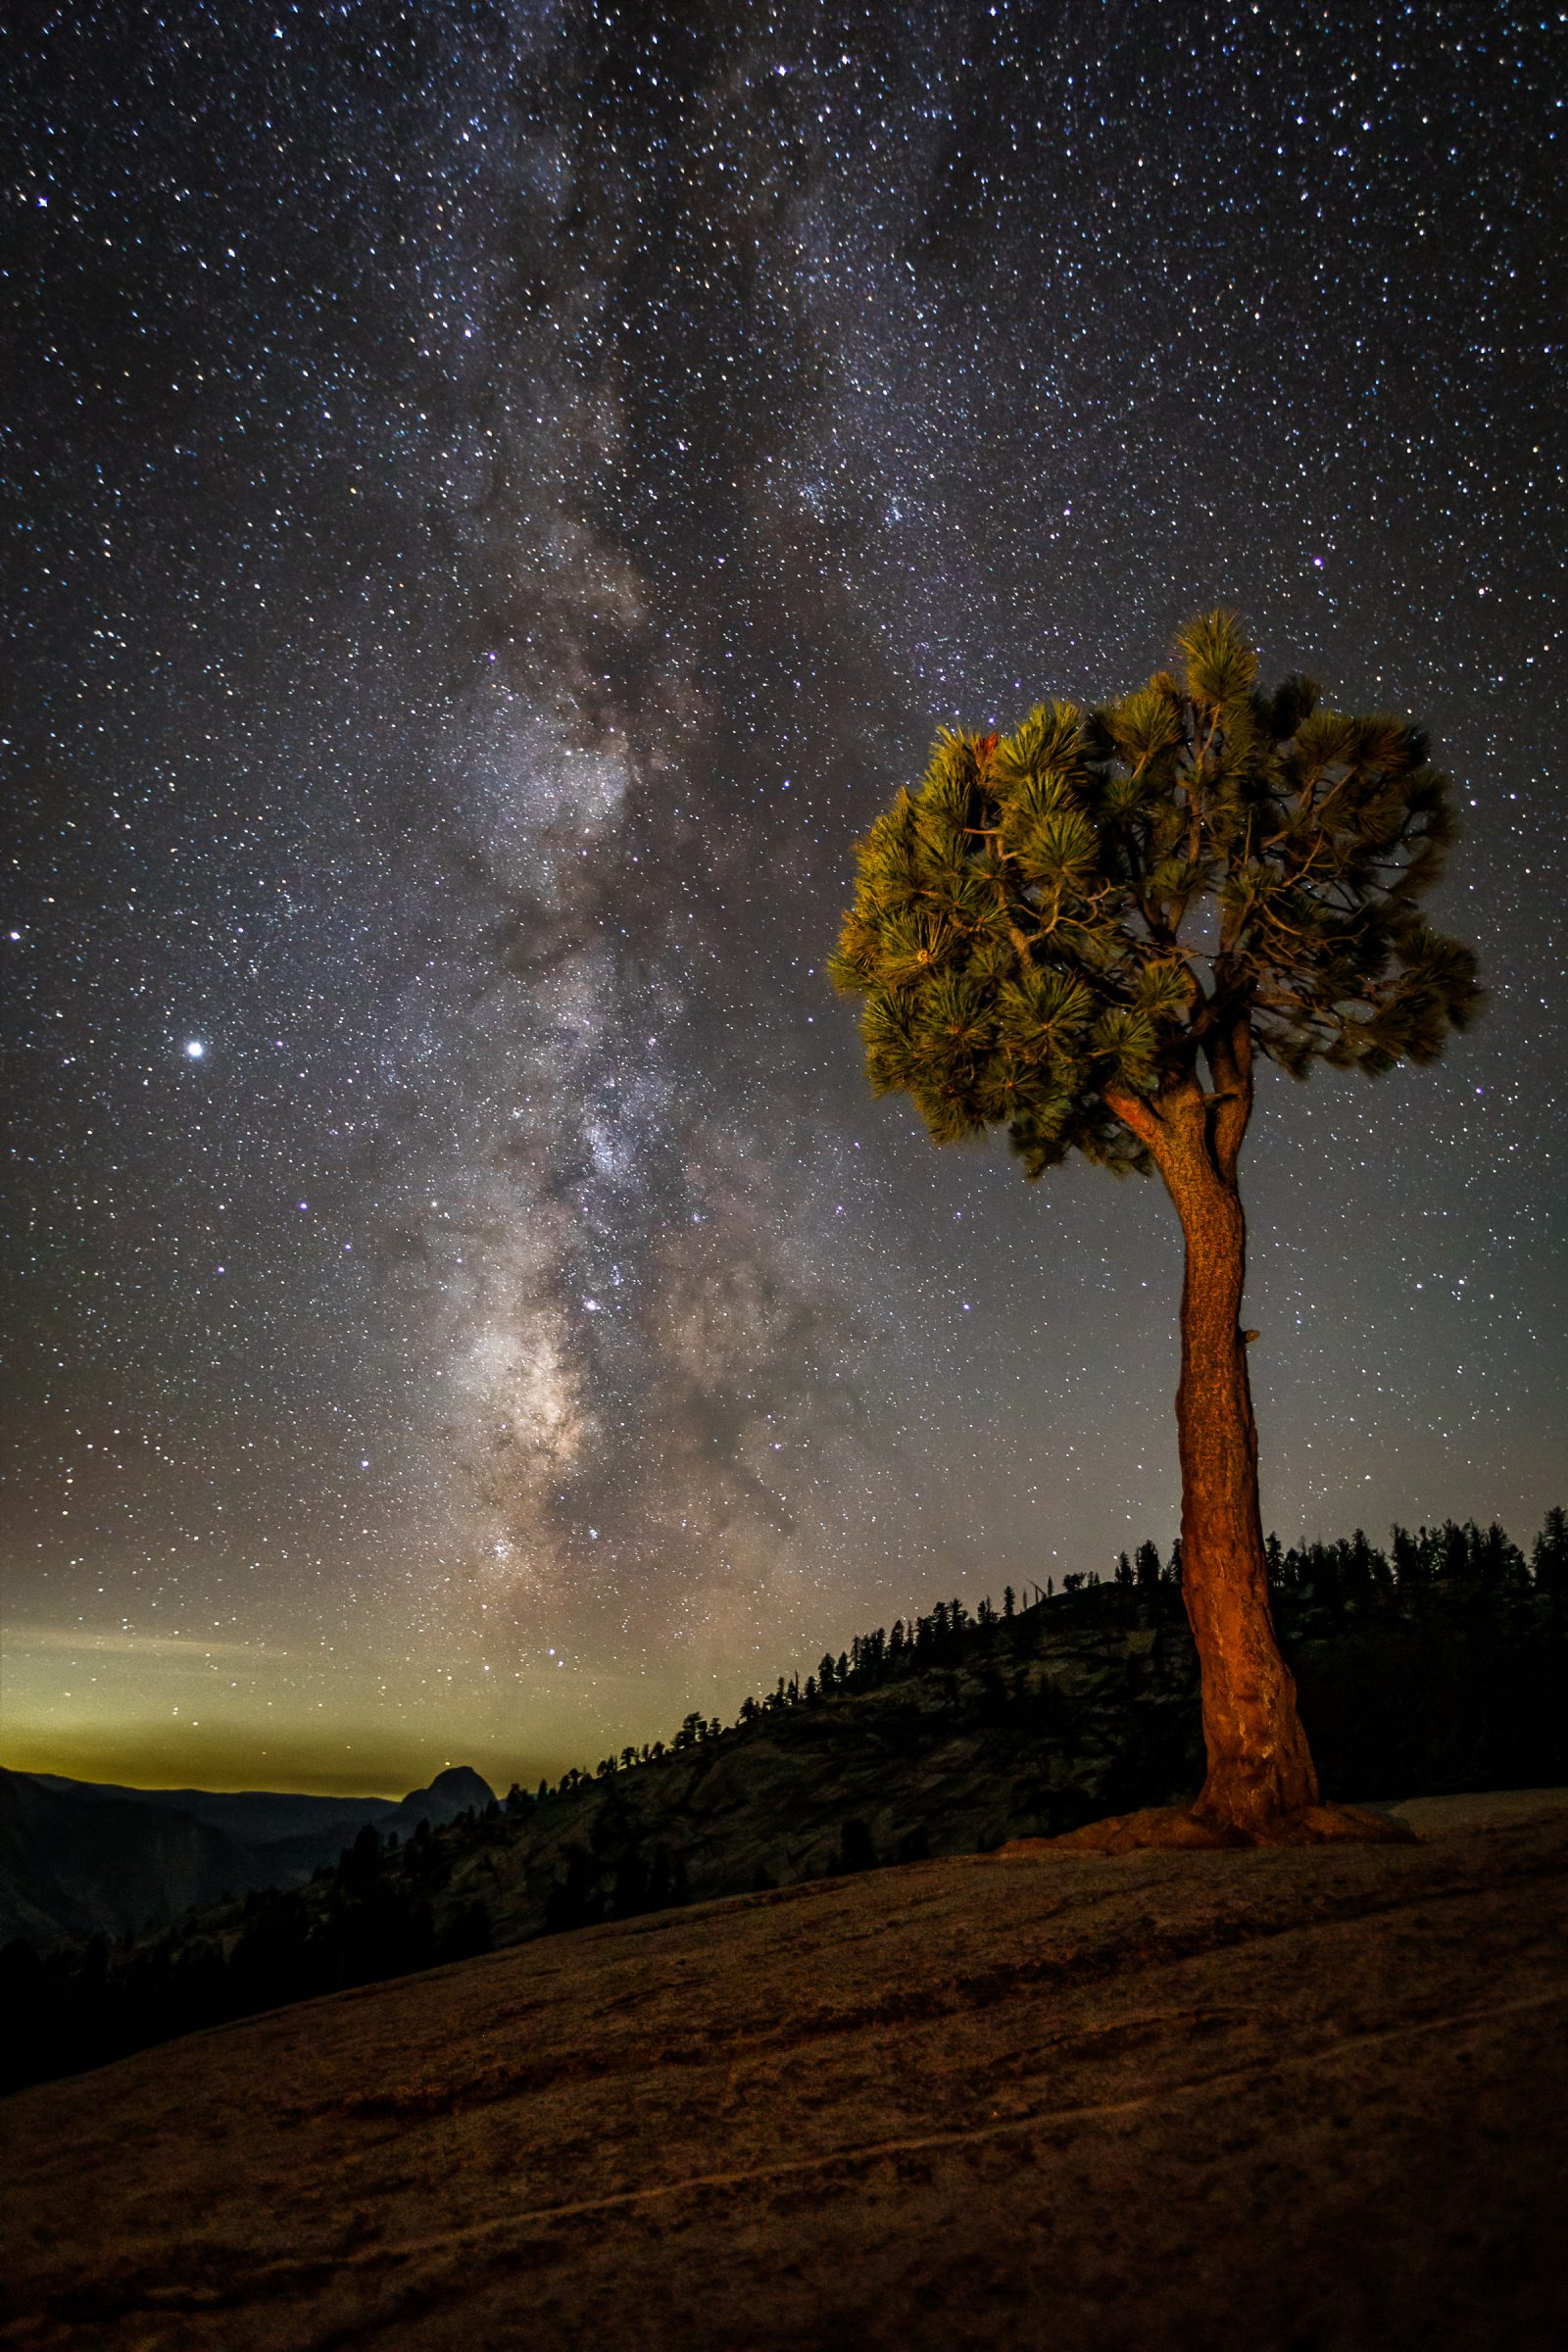 Milky Way by Juniper Tree